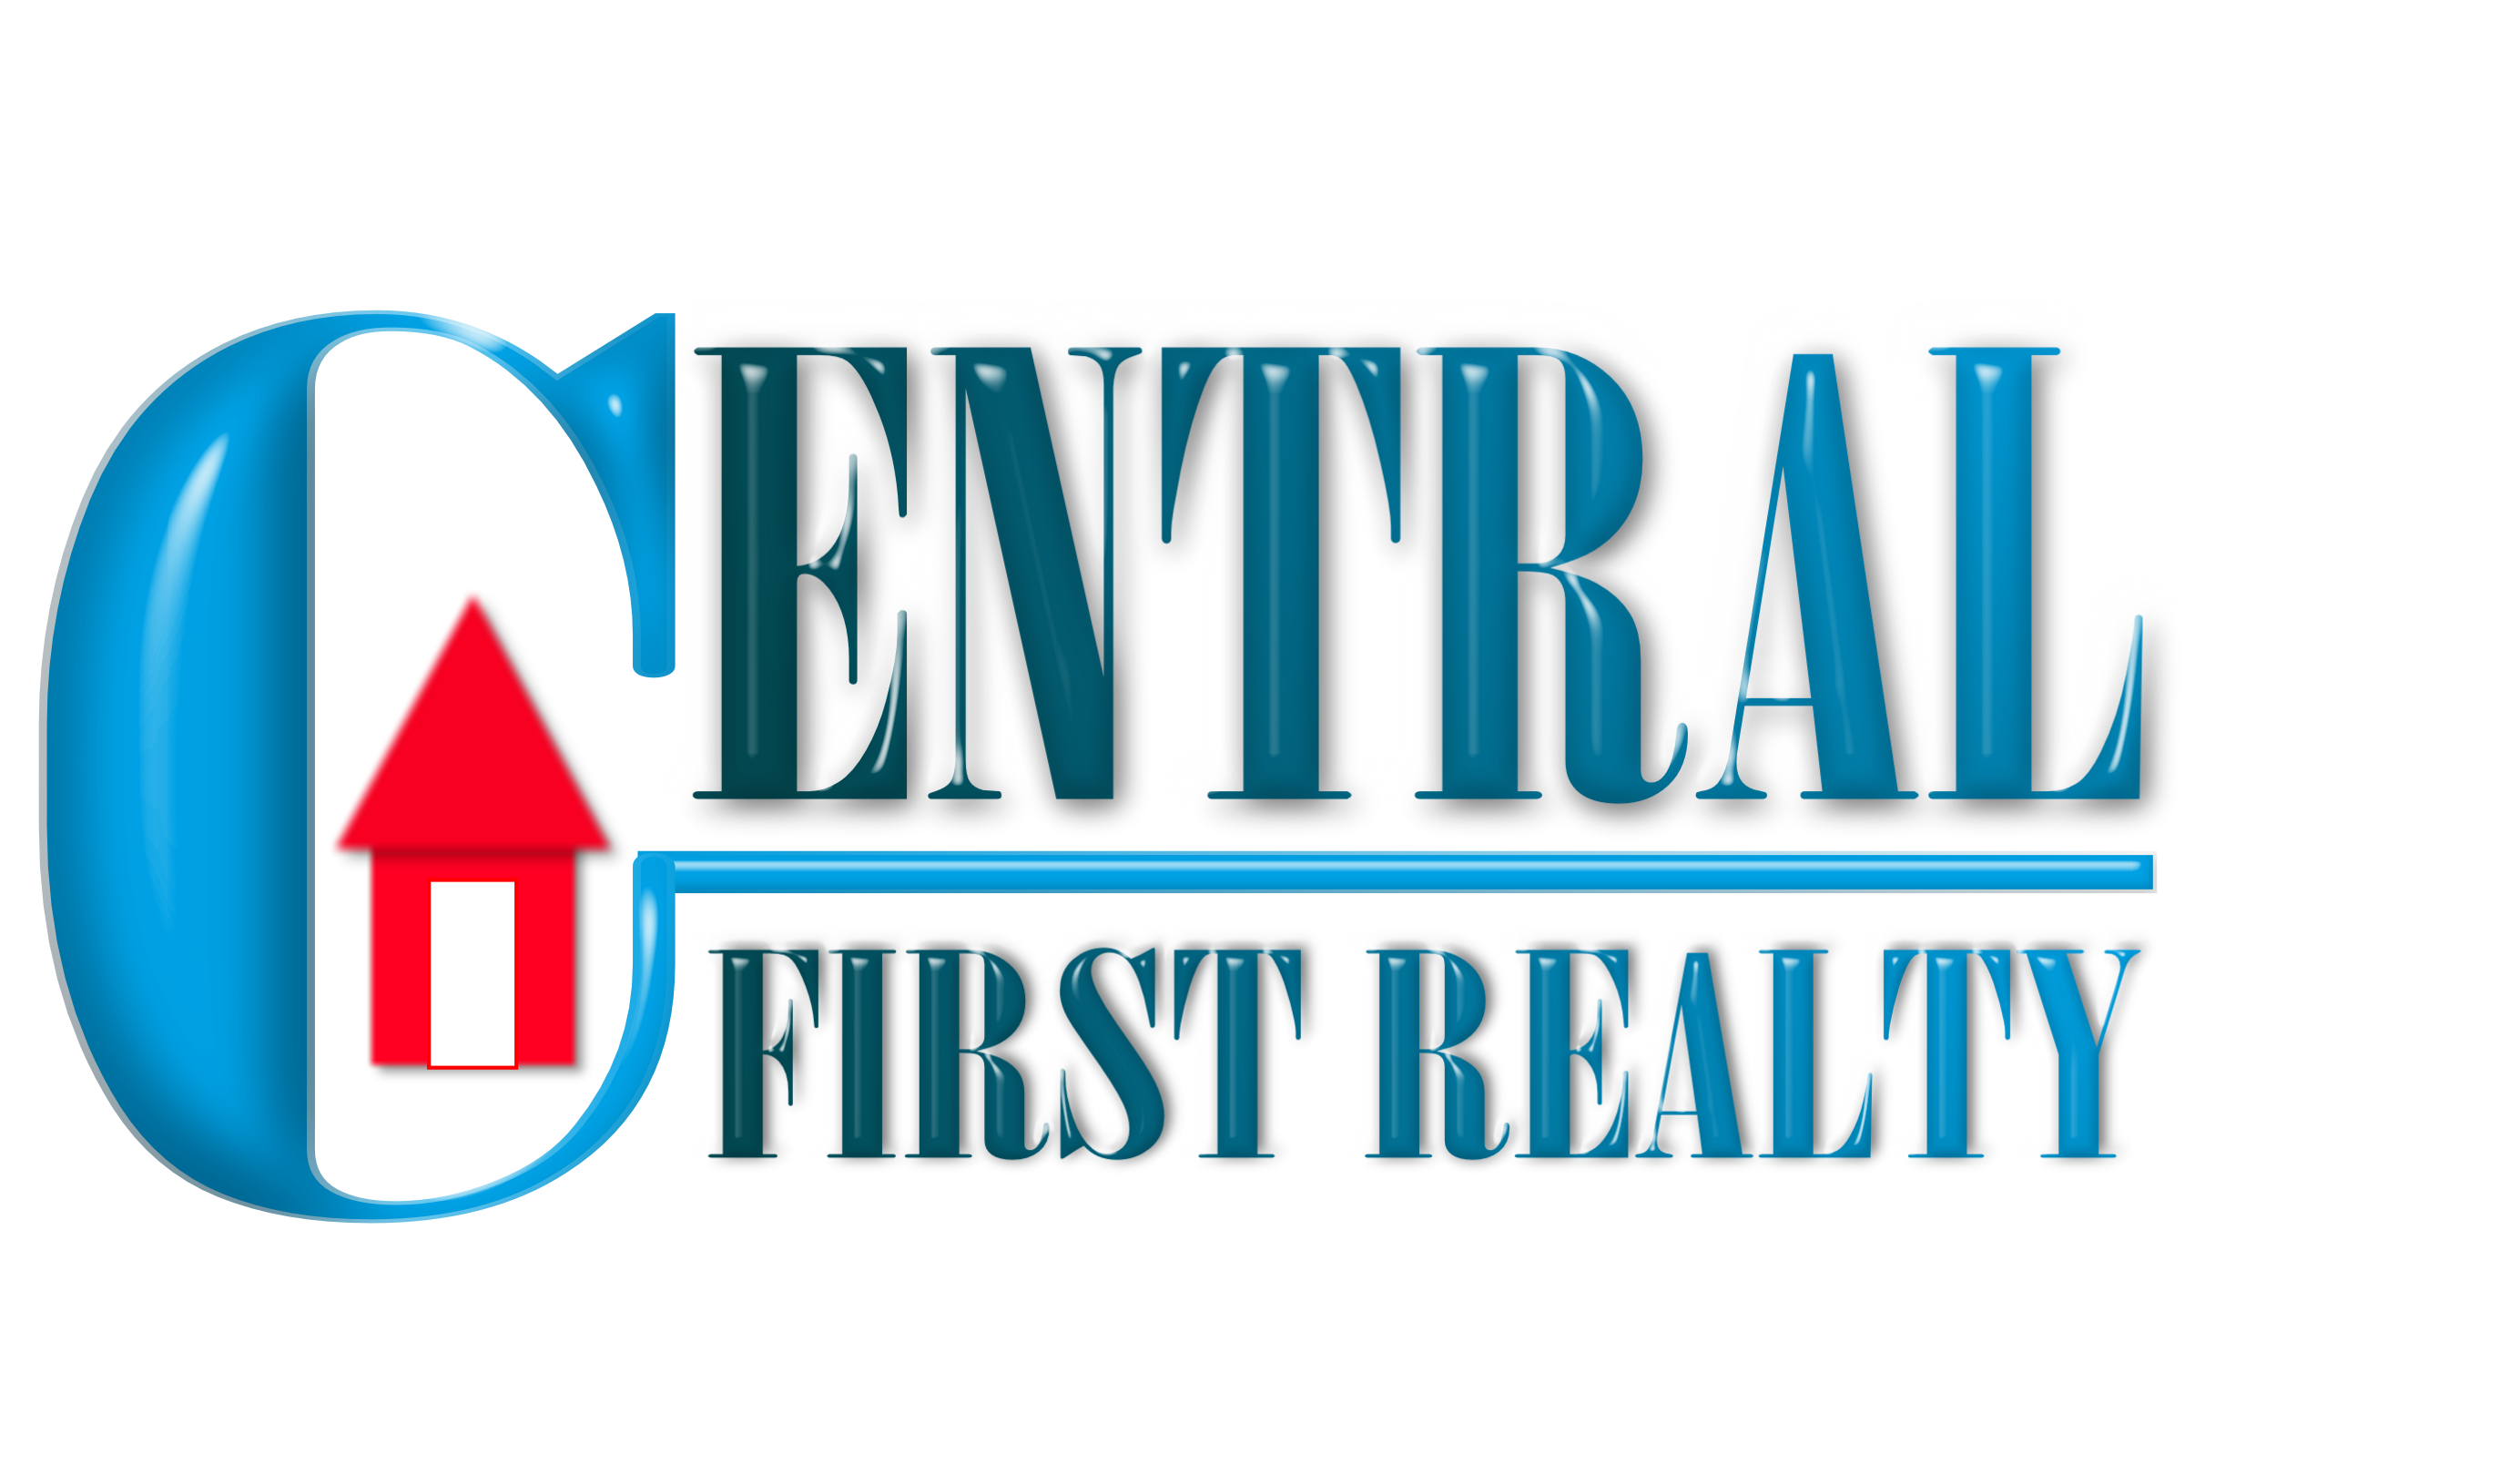 Central First Realty